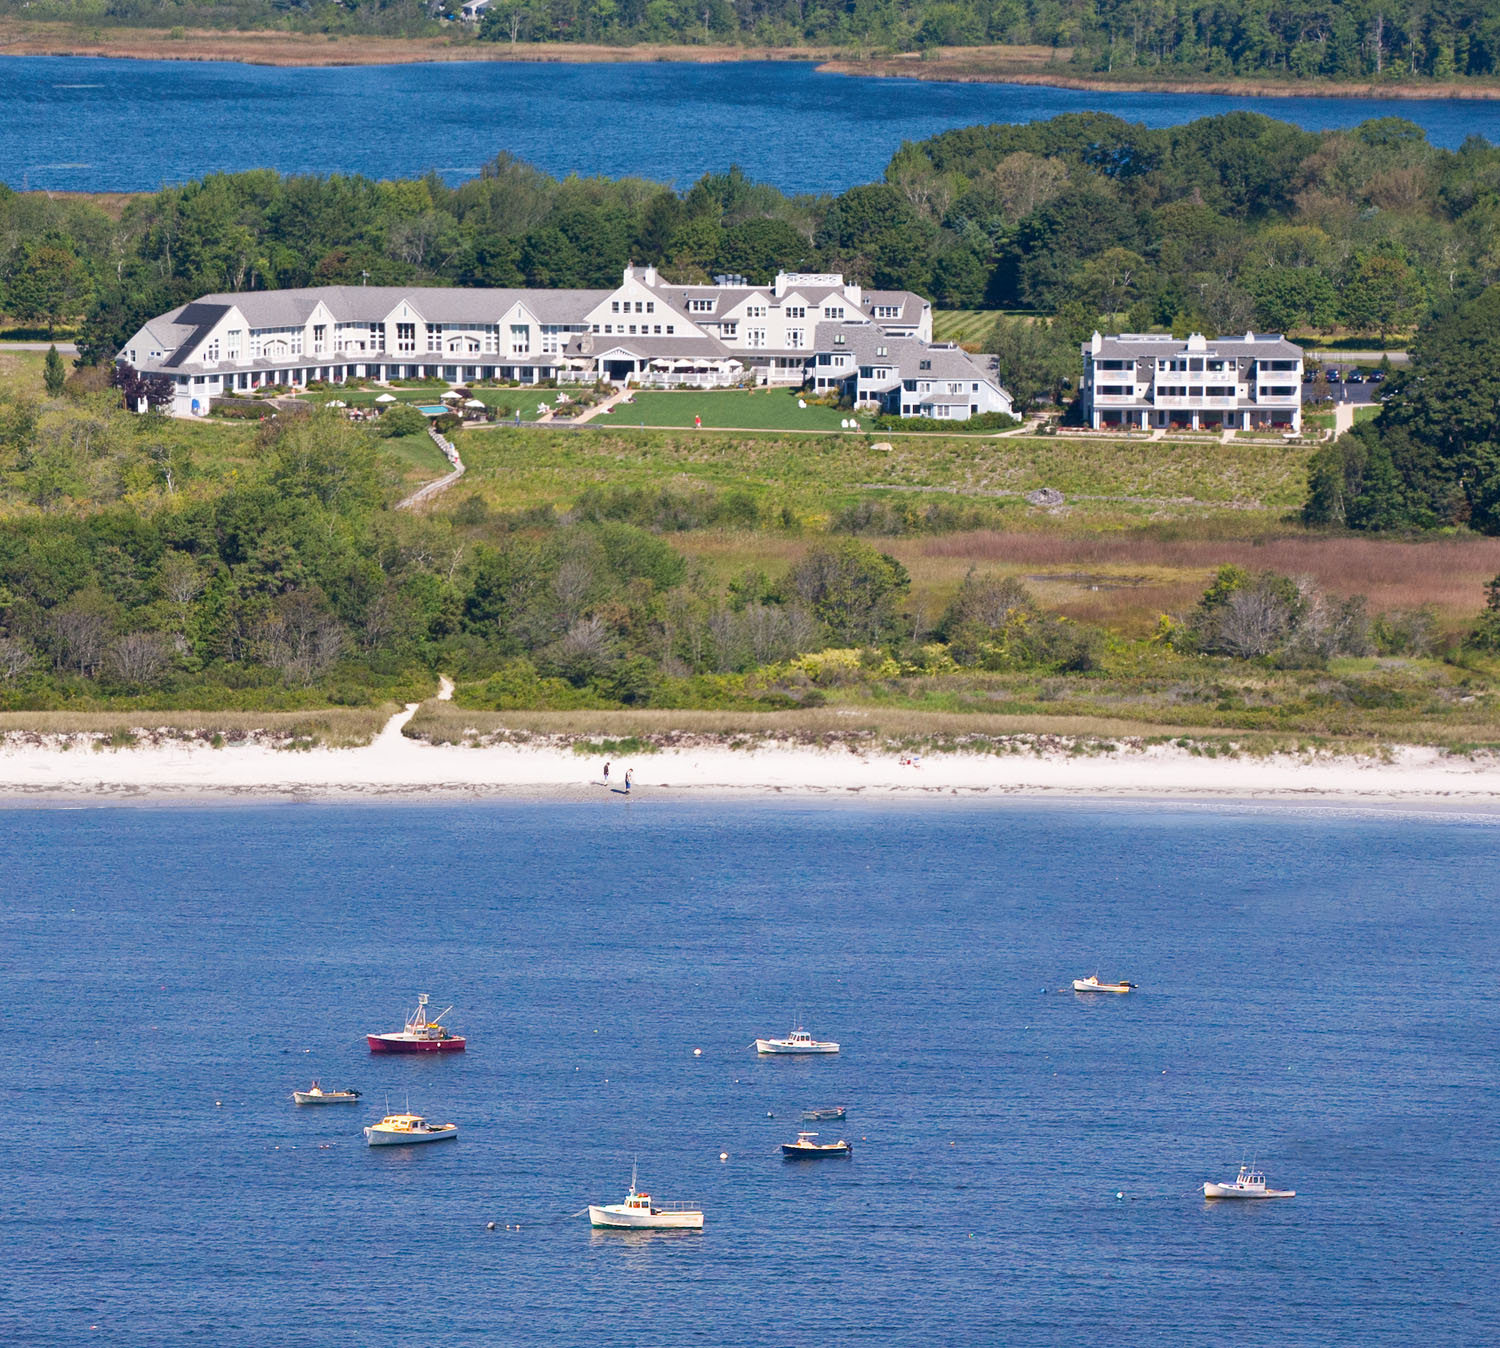 Bedroom Adventure Gear Smart Deals Inn By The Sea Cape Elizabeth Maine